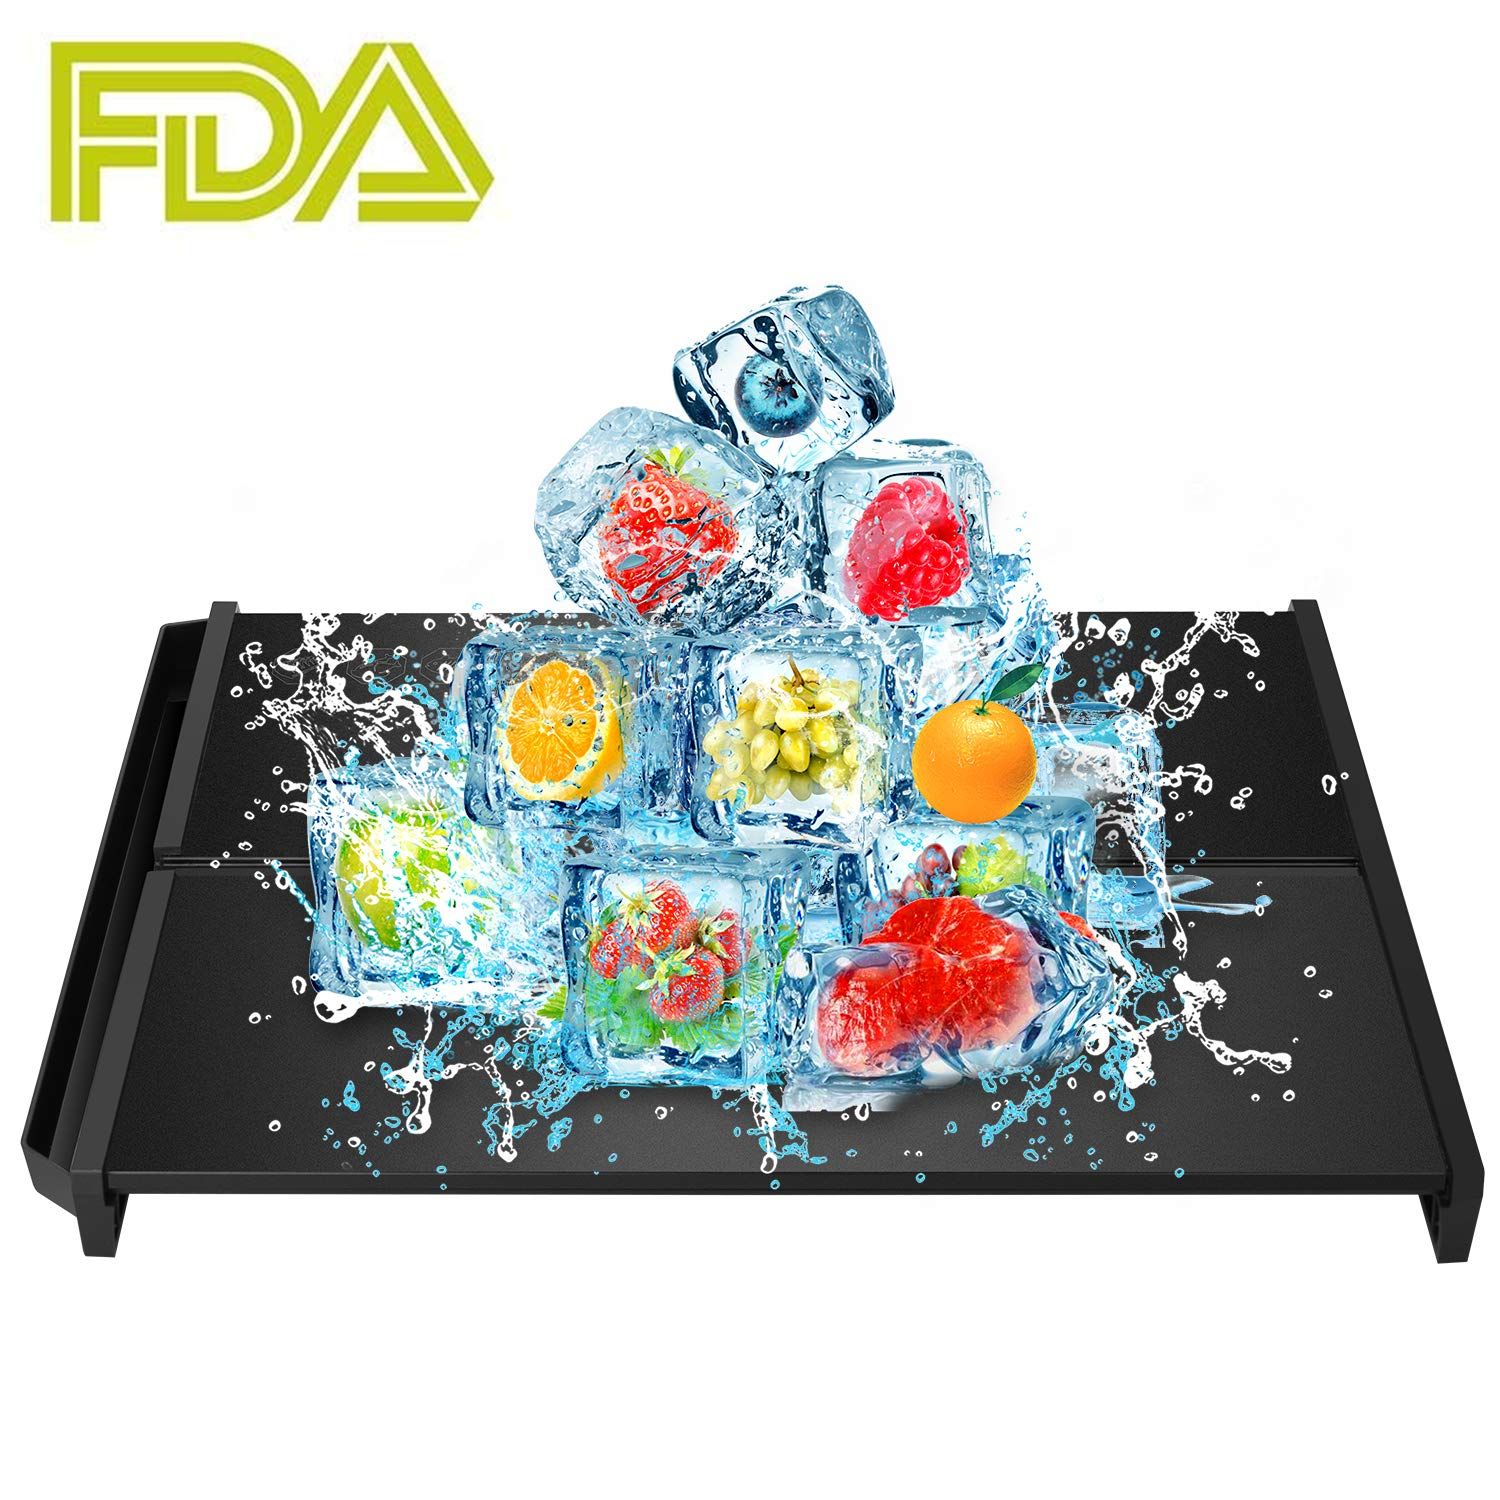 Rapid Thaw Defrosting Tray Fujiway Thawing Plate Board for Frozen Food Fast Meat Defrosting Tray Quickly without Electricity Microwave Hot Water or Any Other Tools